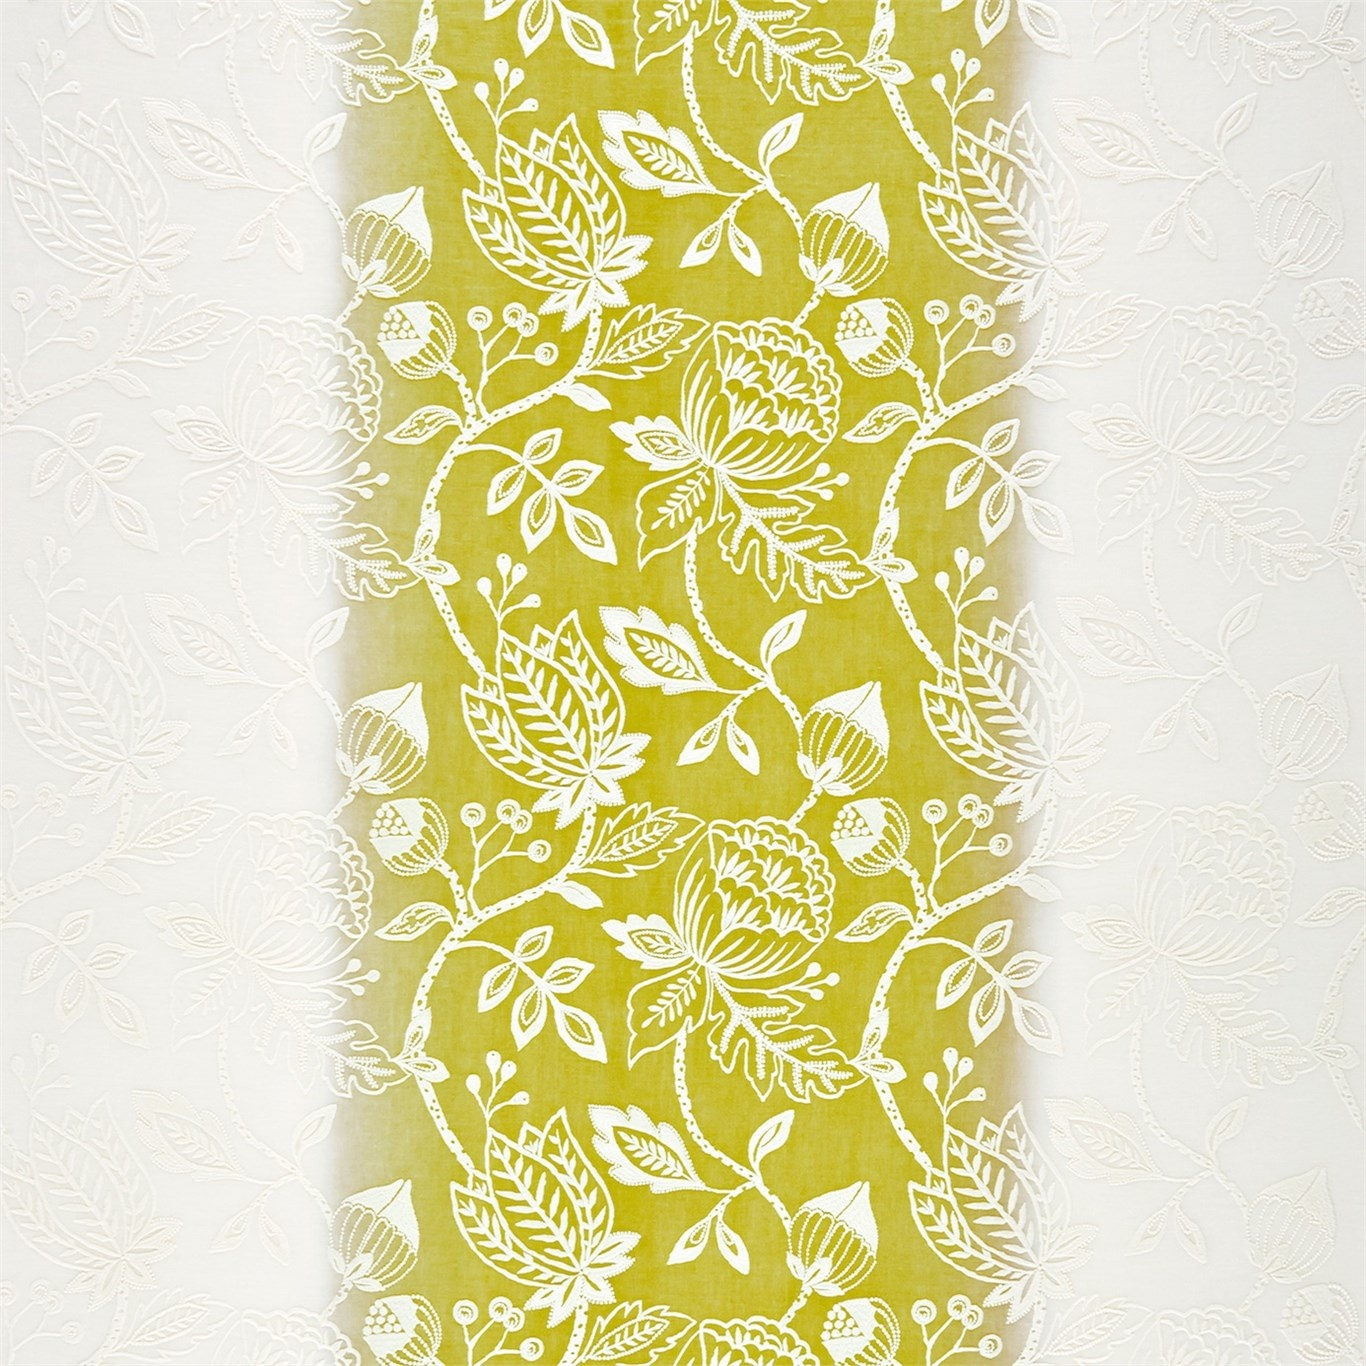 Image of Harlequin Colette Chartreuse Curtain Fabric 131569